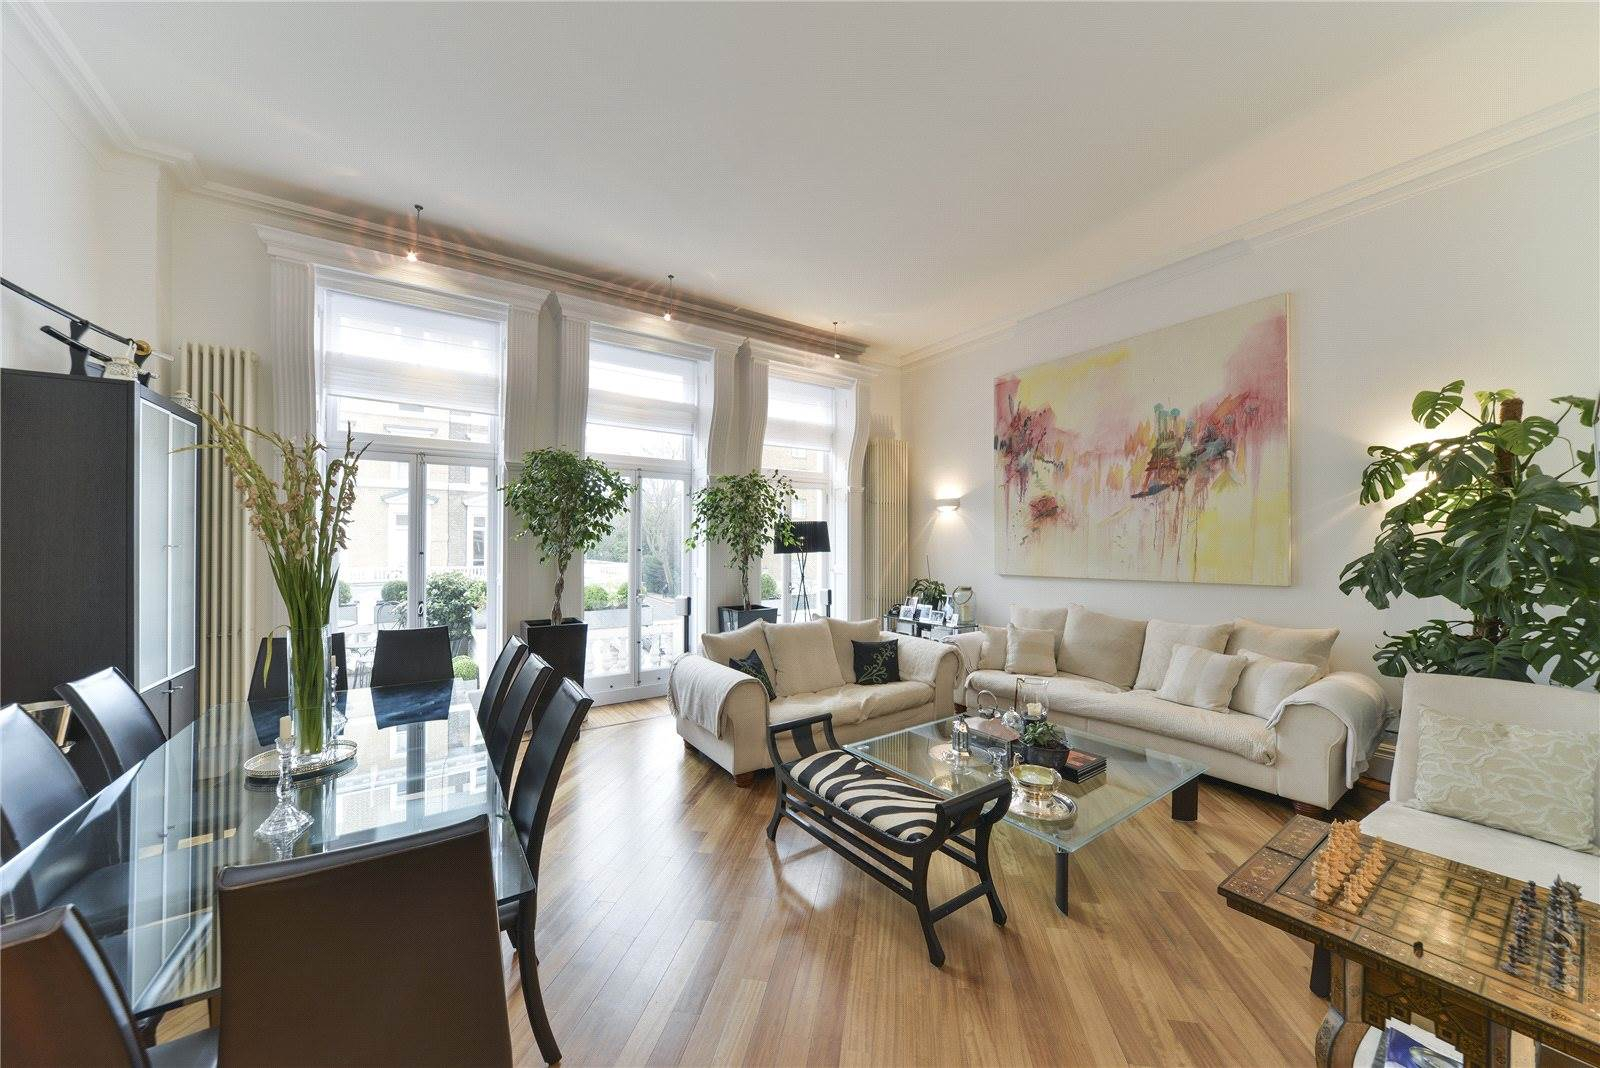 <b>3 Bedrooms, 1,730 sq. ft.</b><br/>Three-bedroom maisonette with wonderful outside space